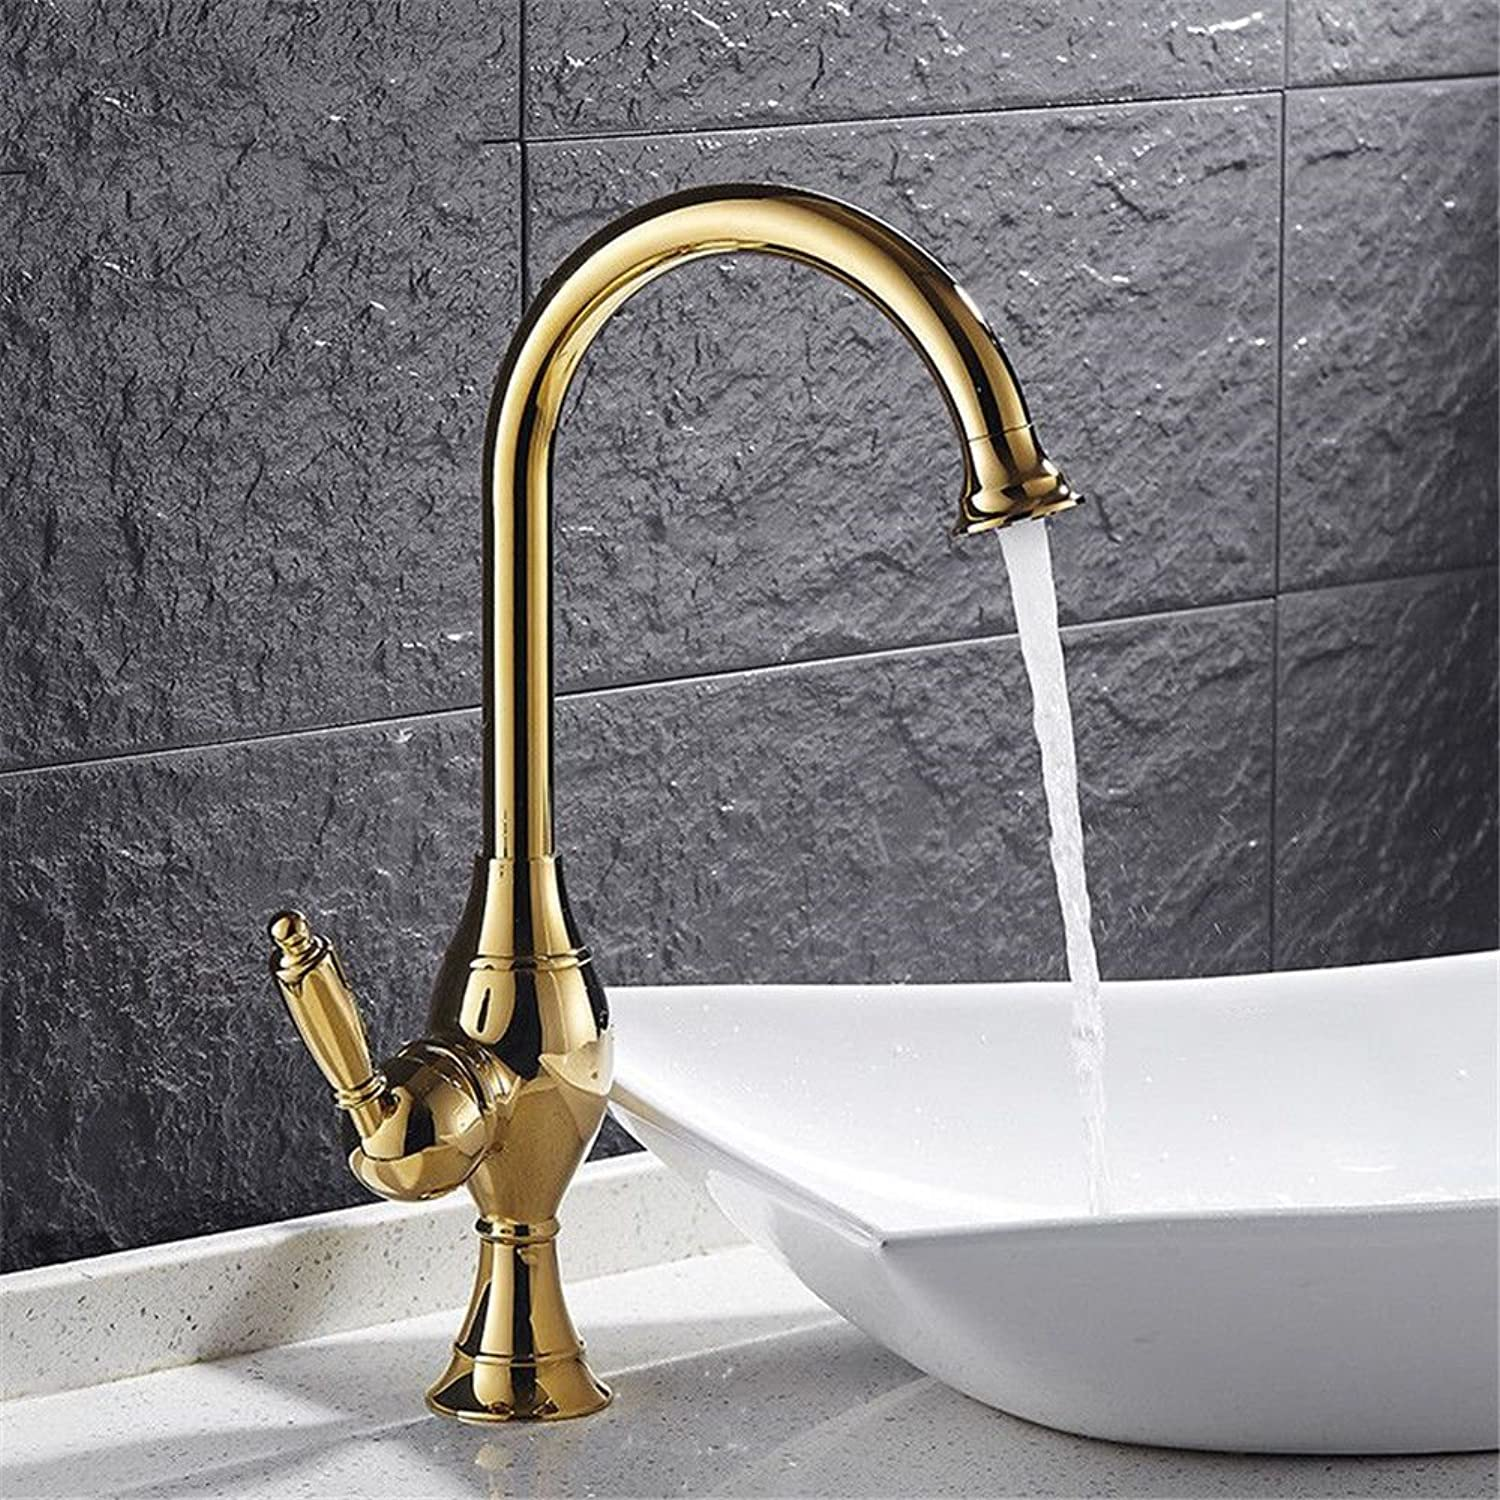 Commercial Kitchen Faucet Stainless Handle Pull Out Kitchen Sink Faucet?Copper Kitchen Faucet hot and Cold Mixing Valve European Bathroom 360° redating Basin Faucet Bathroom Single Hole gold Faucet